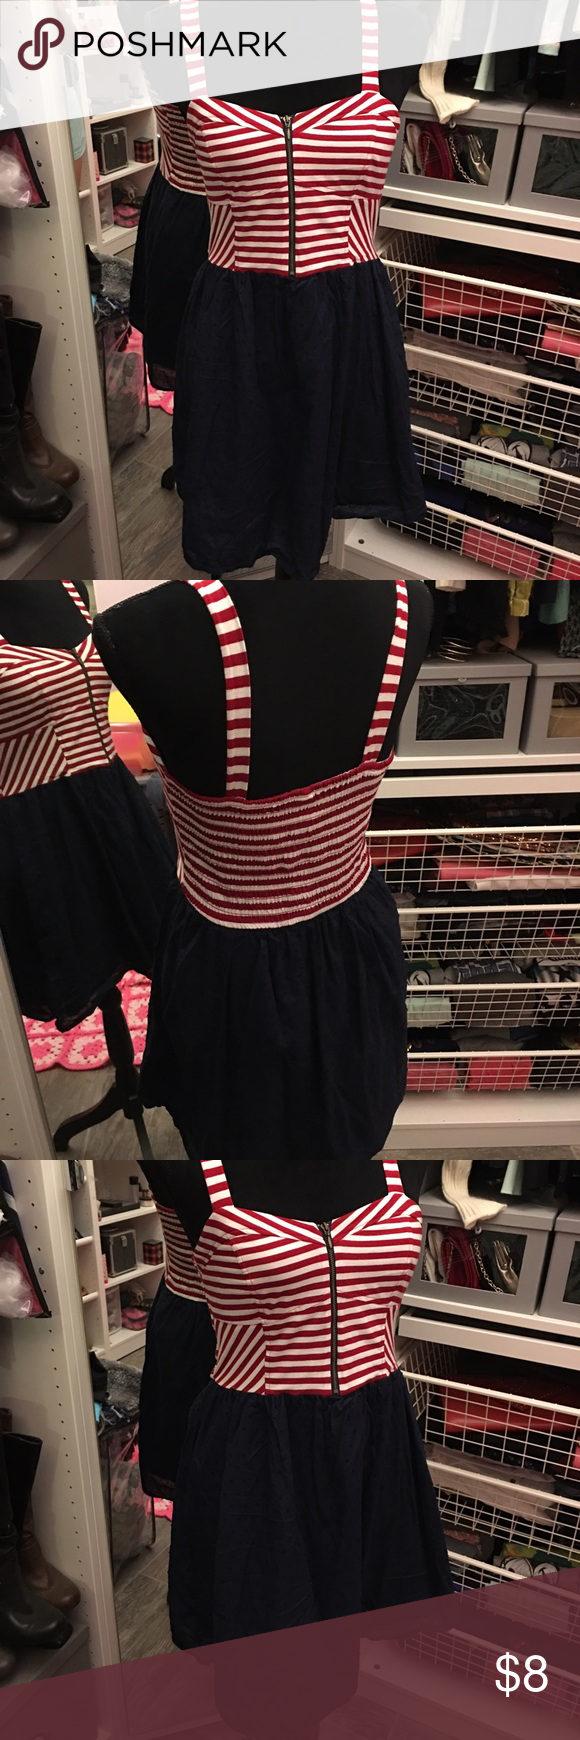 Target dress👗 Candy cane striped dress! Worn about three times. Fits nice👗 Target Dresses Midi